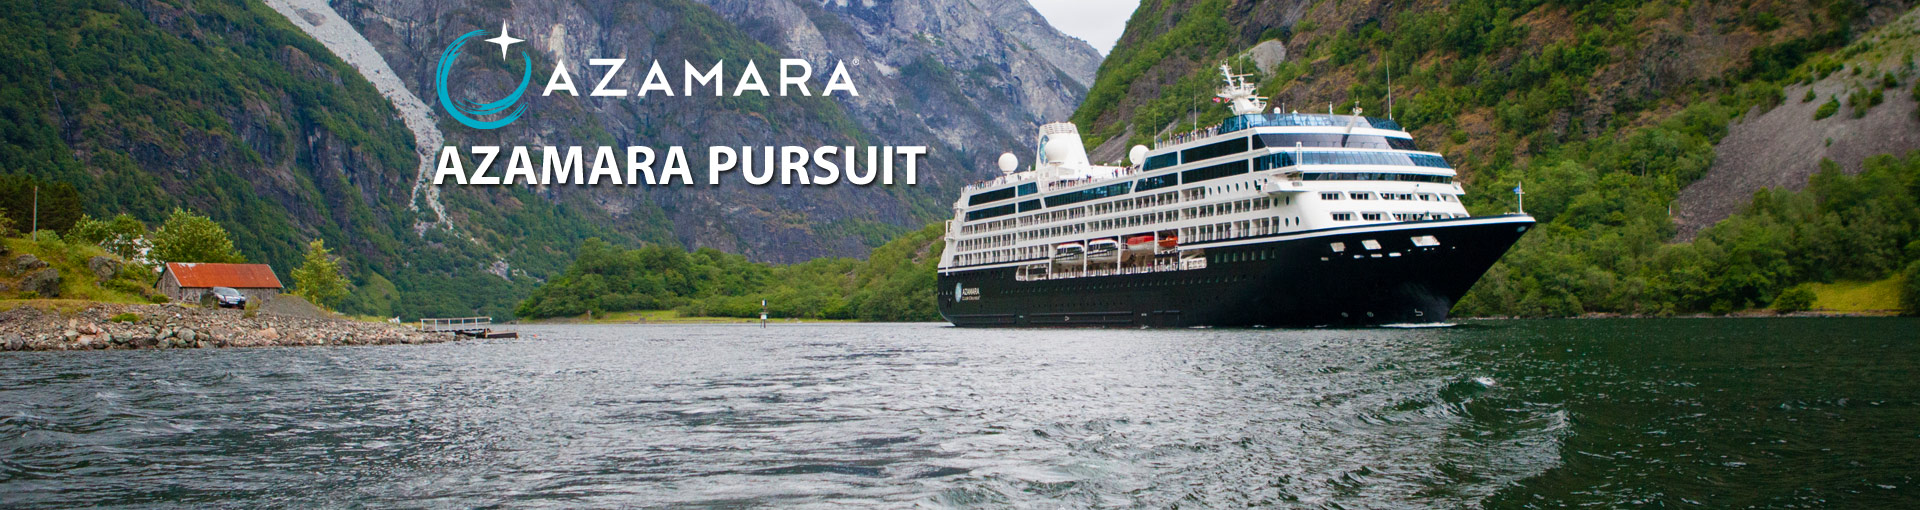 Azamara Club Cruises Azamara Pursuit Cruise Ship